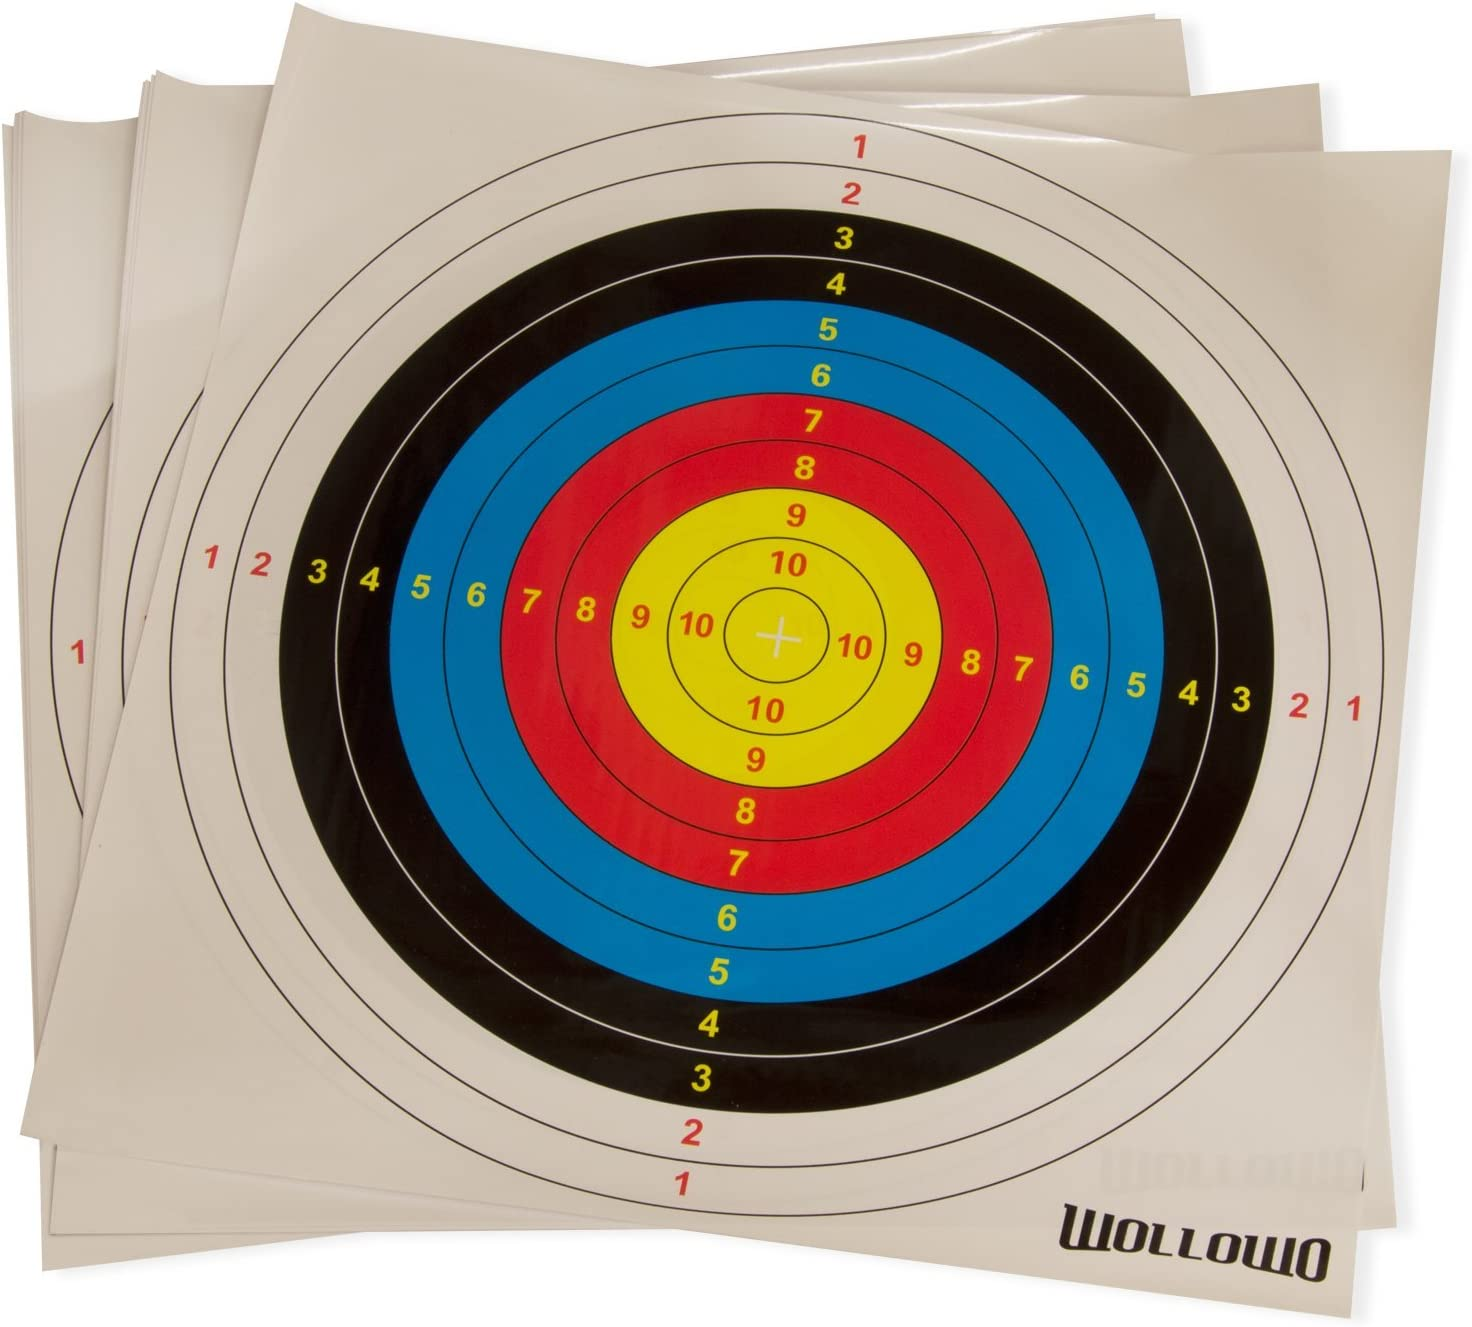 Wakauto 20Pcs Archery Target Face Archery Paper Useful Professional Targets Arrow Targets Shooting Accessories Ideal for Match and Daily Practice Use Outdoor Shooting Practice